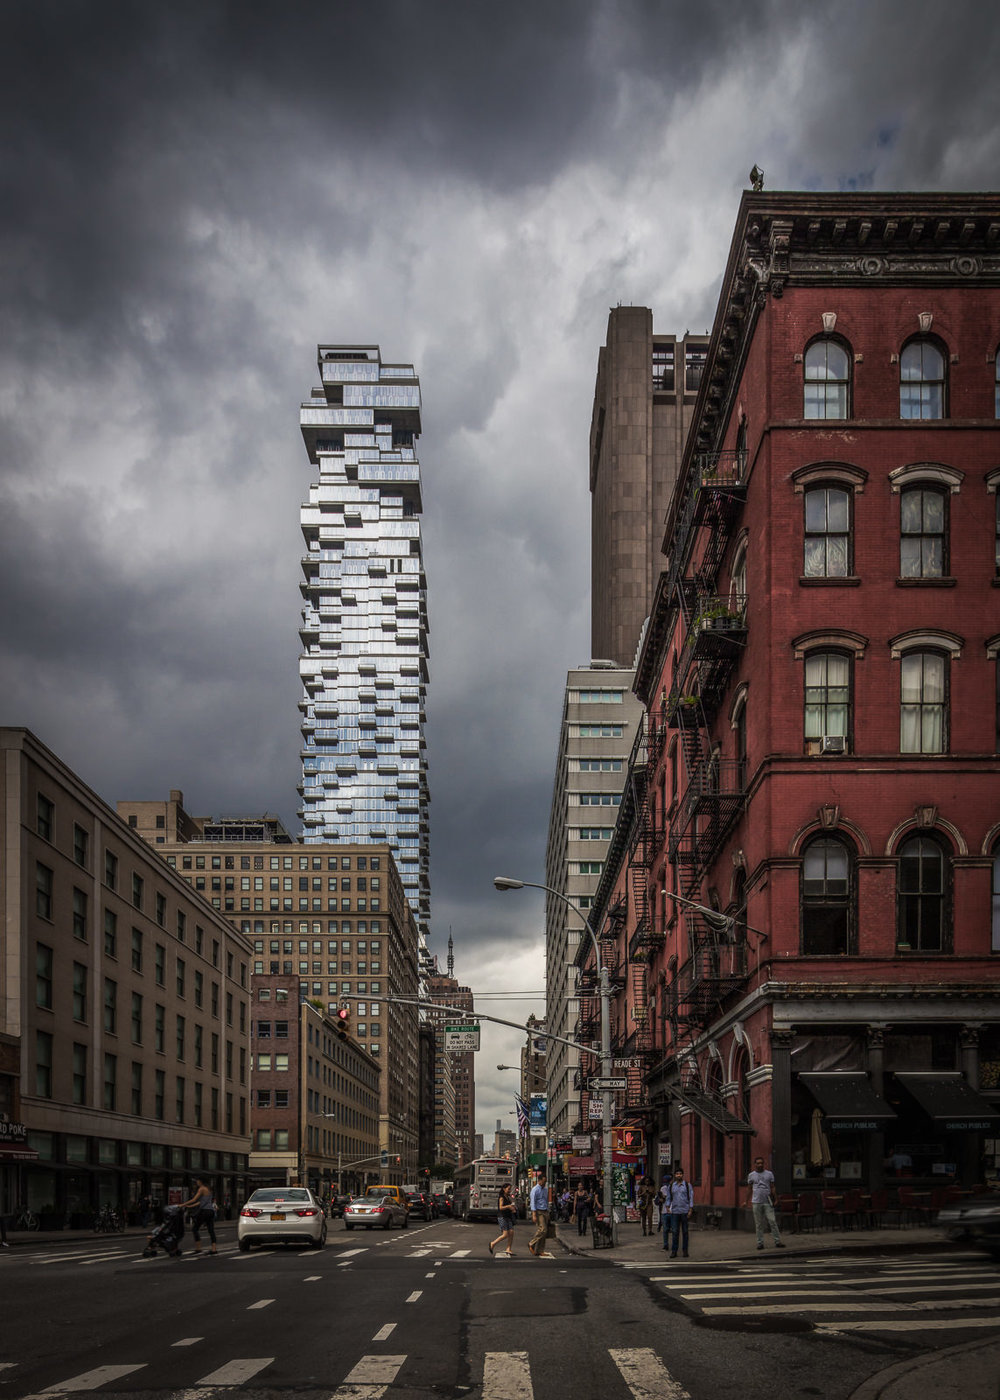 56 Leonard, New York City, NY - Herzog and de Meuron